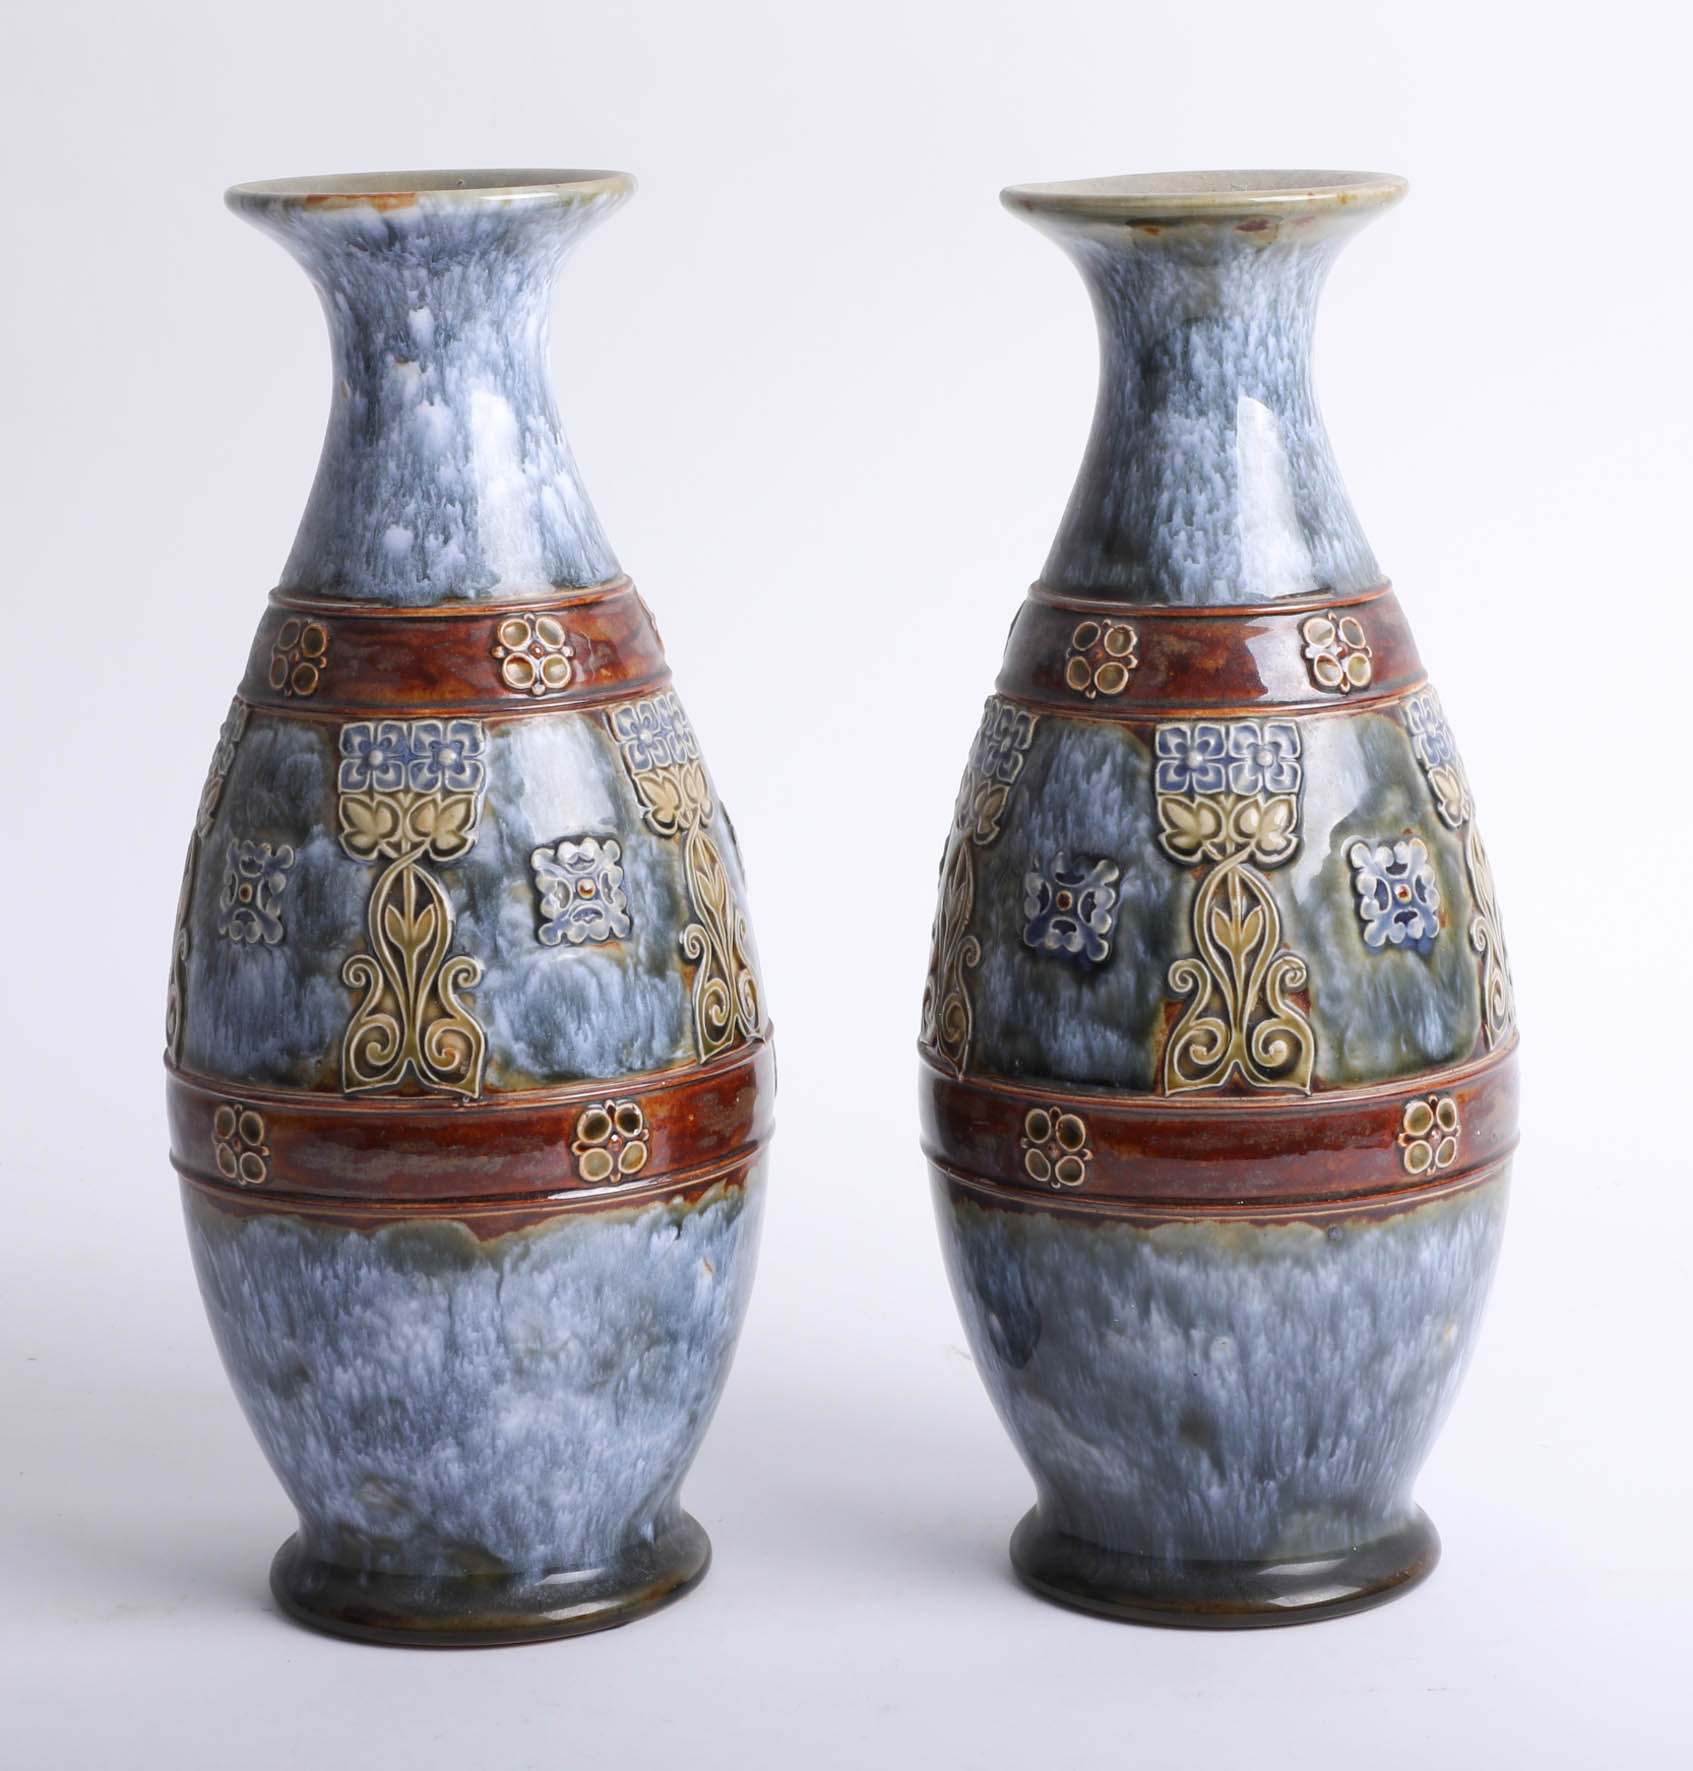 Lot 003 - A pair of Doulton art pottery vases, height 28cm.